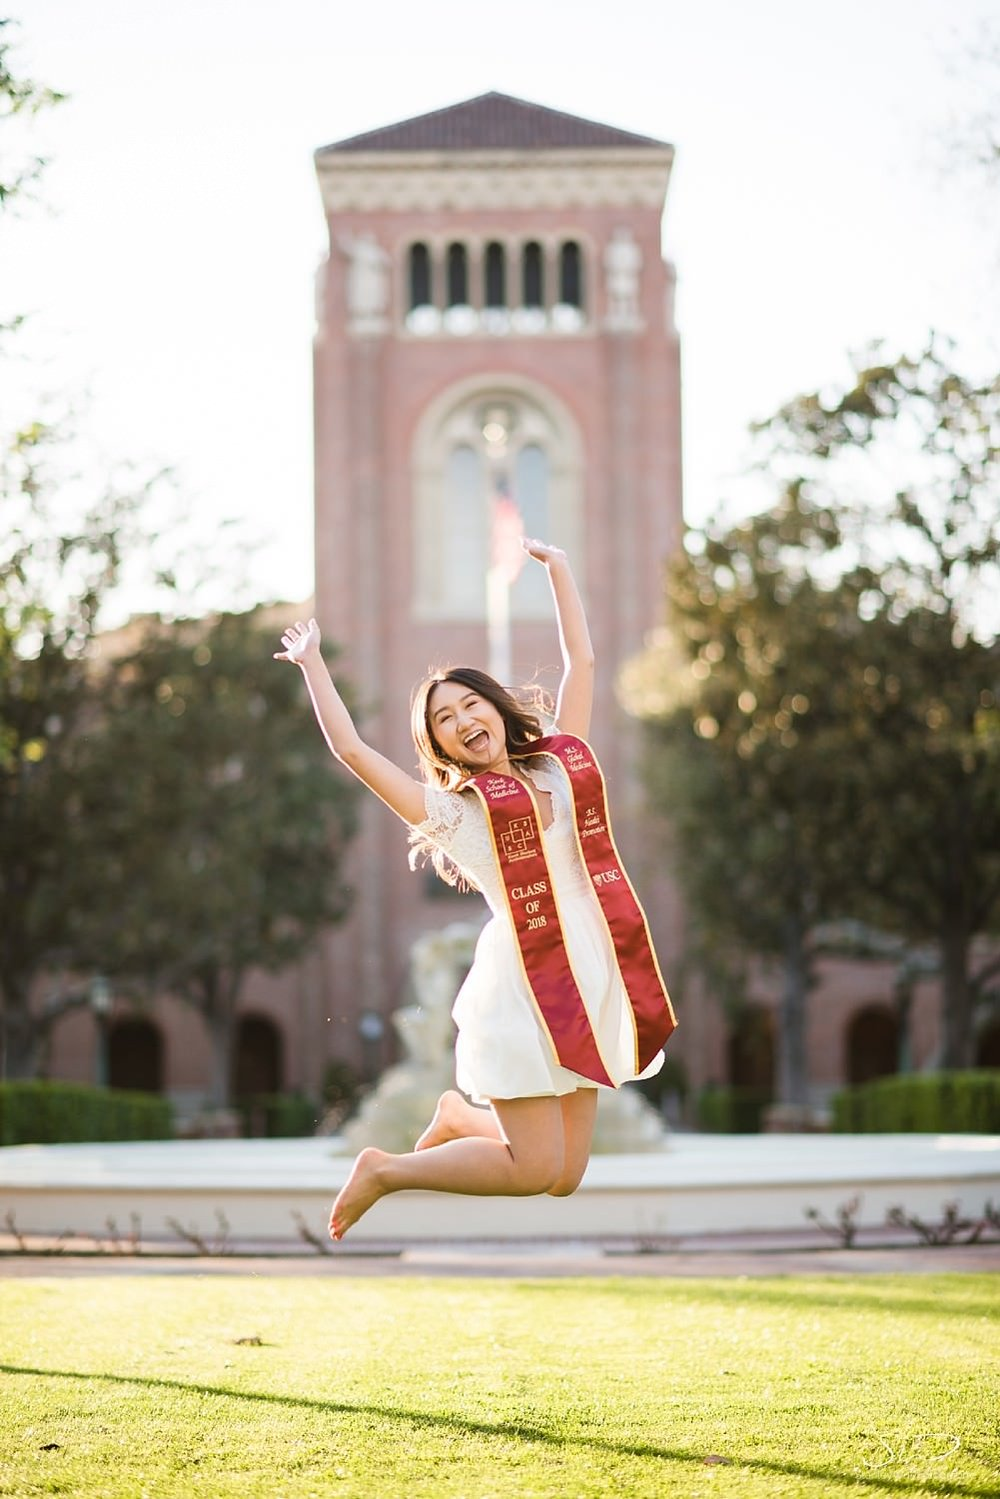 Jumping Portrait in front of Bovard Hall at USC | Los Angeles Orange County Senior Portrait & Wedding Photographer